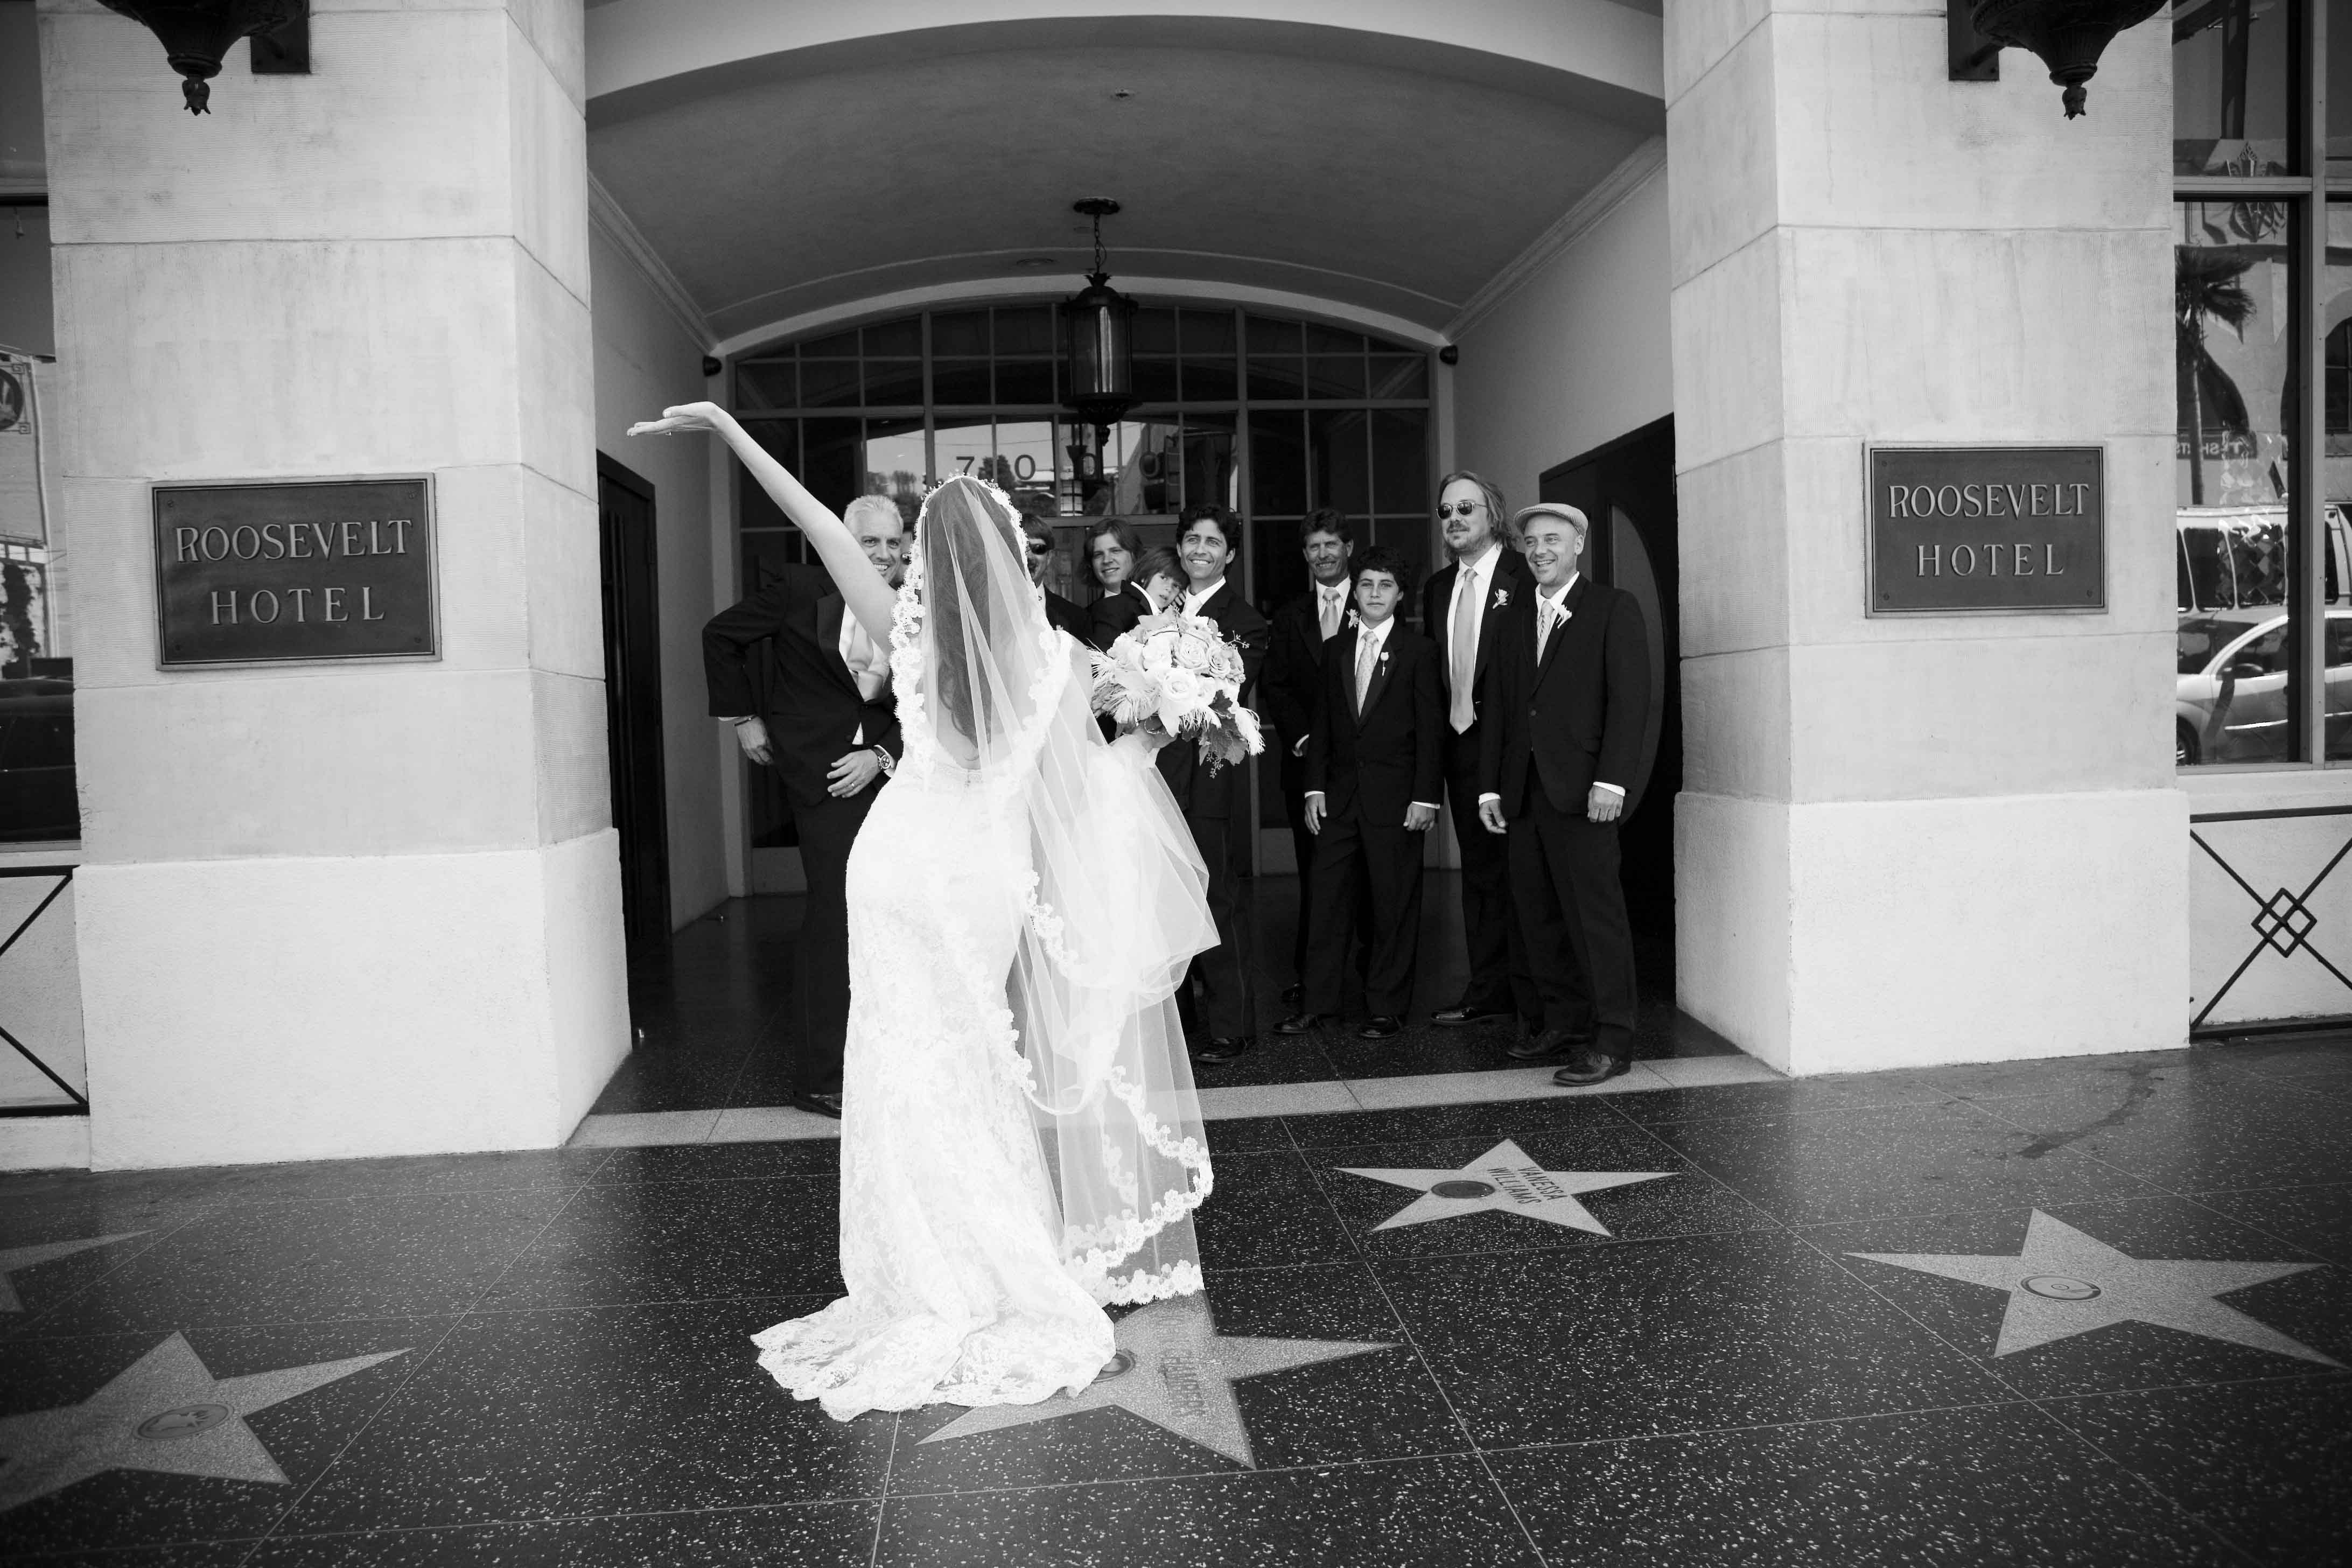 Wedding Dresses, Romantic Wedding Dresses, Vintage Wedding Dresses, Fashion, dress, Vintage, Modern, Classic, Groomsmen, Bride, Groom, Romantic, Hotel, The, La, Top, Los, Angeles, Hollywood, 20s, Lisa franchot photography, Roosevelt, Roof, Modern Wedding Dresses, Classic Wedding Dresses